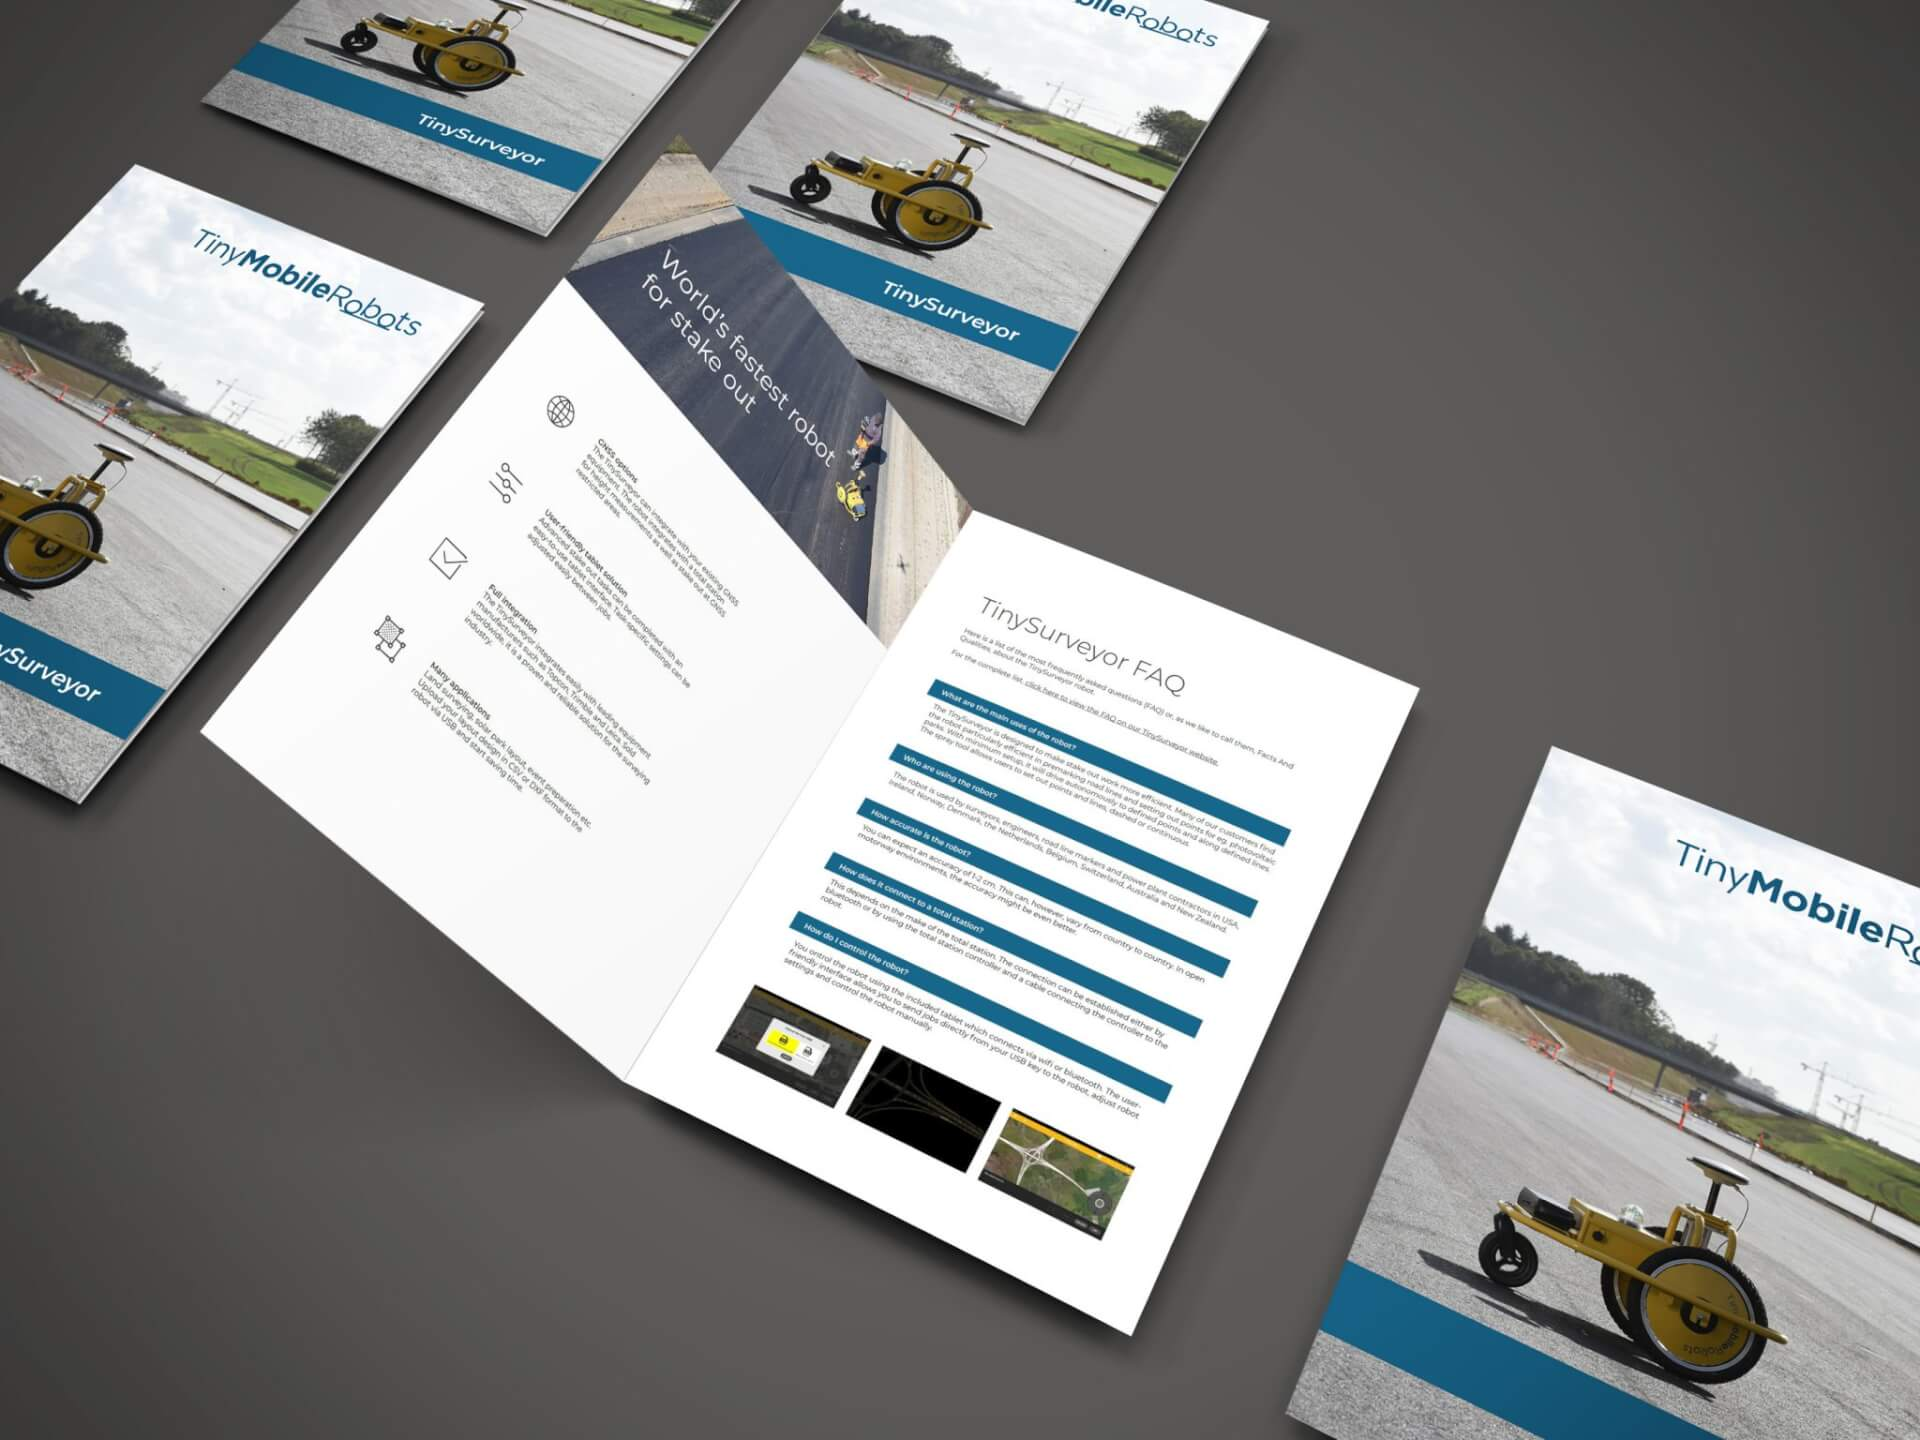 TinySurveyor e-brochure